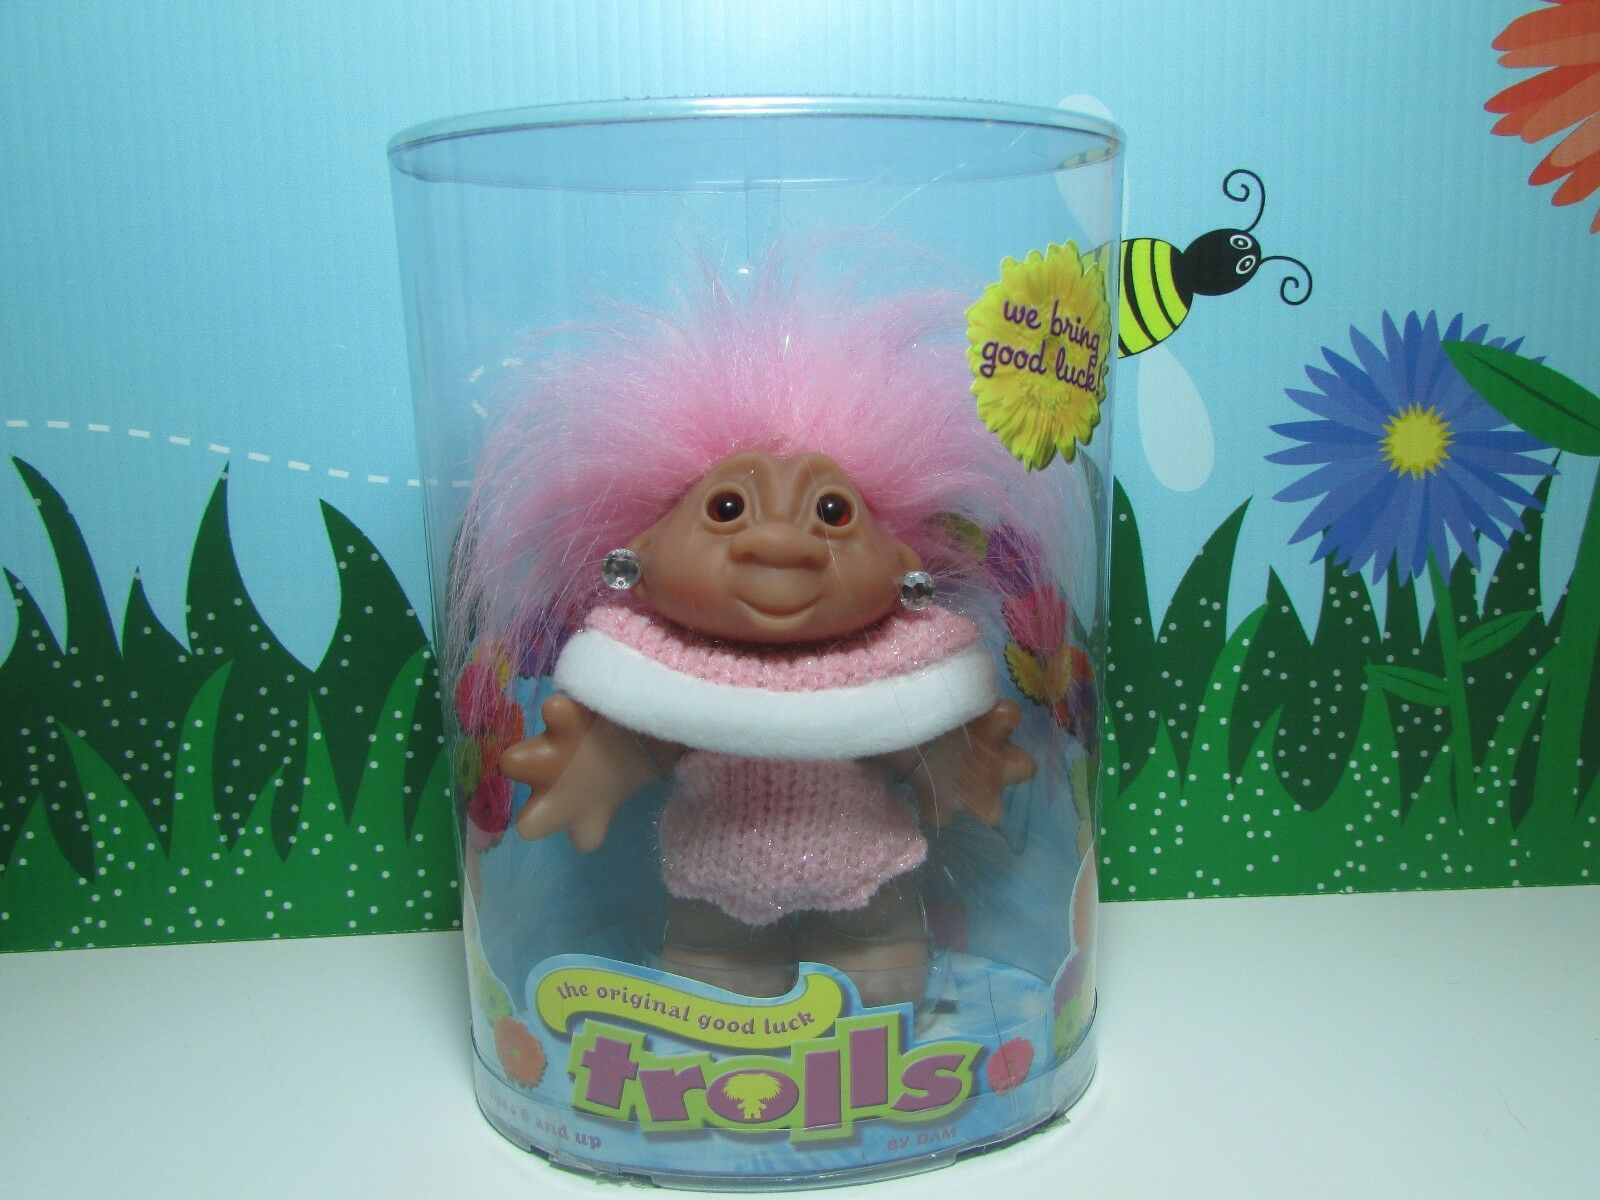 SWEATER GIRL WITH EARRINGS  () - 5  DAM Troll Doll - NEW IN CONTAINER